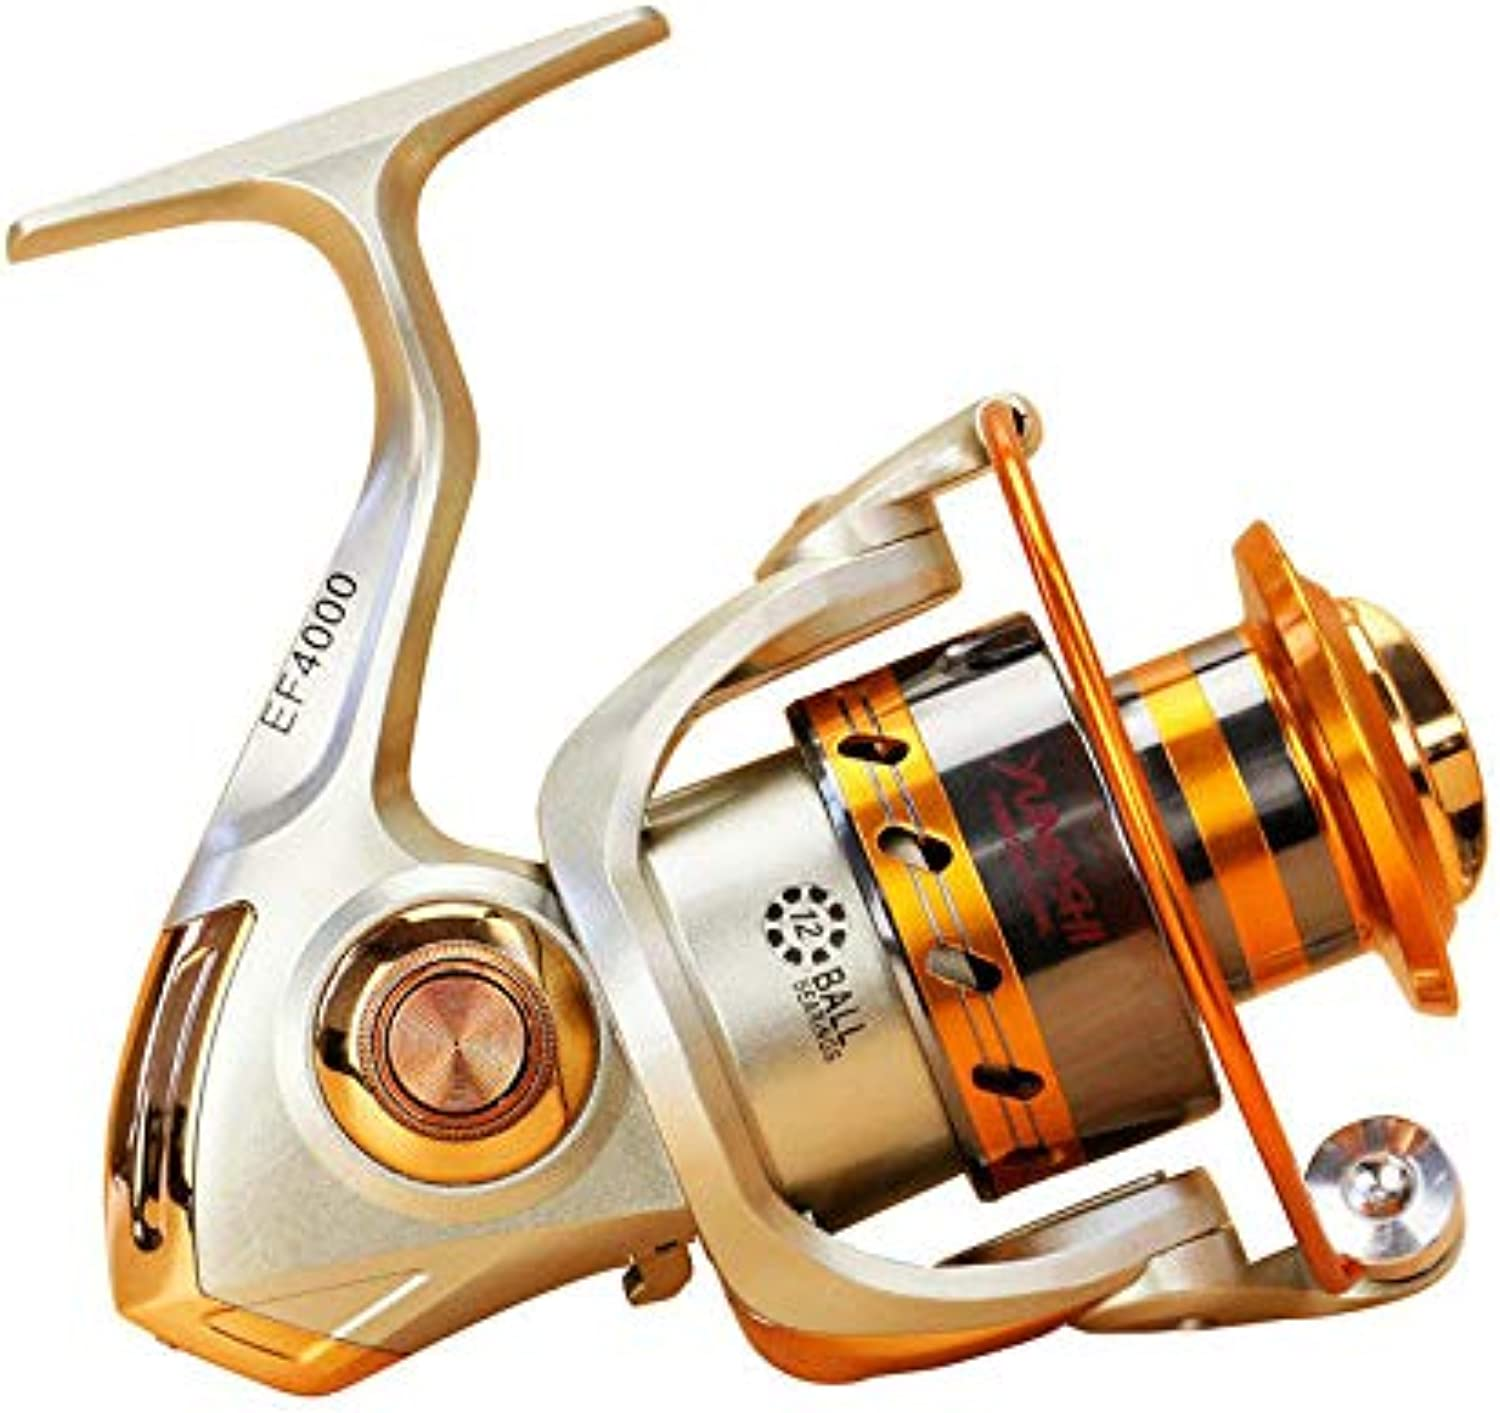 EF3000-6000 5.5 1 12BB Full Metal Spinning Reel Left Right Hand Interchange Fishing Reel